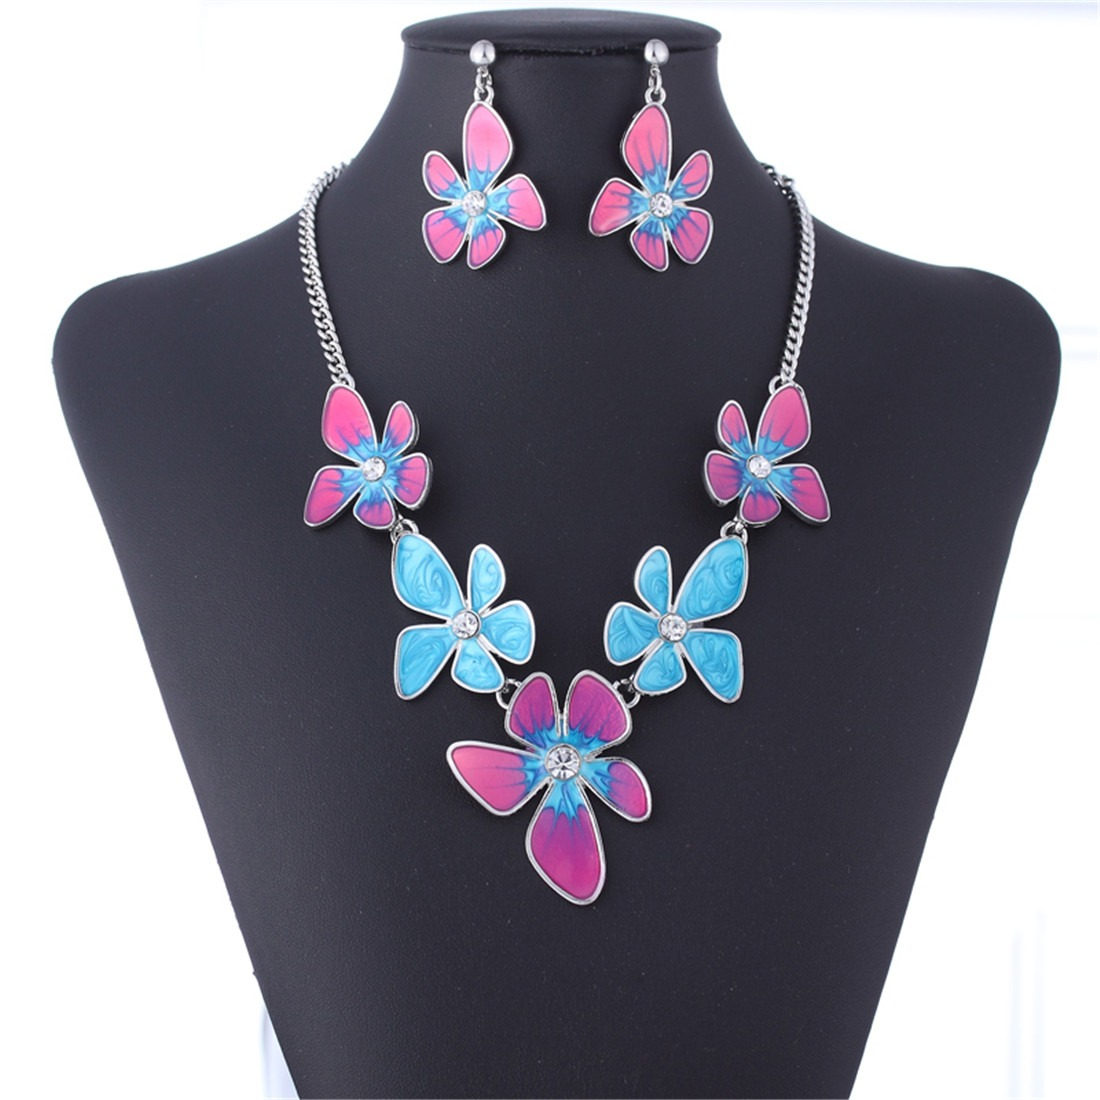 Oil Drop Flower Stainless Steel Extro Chunky Chain Necklace Earrings Jewelry Set